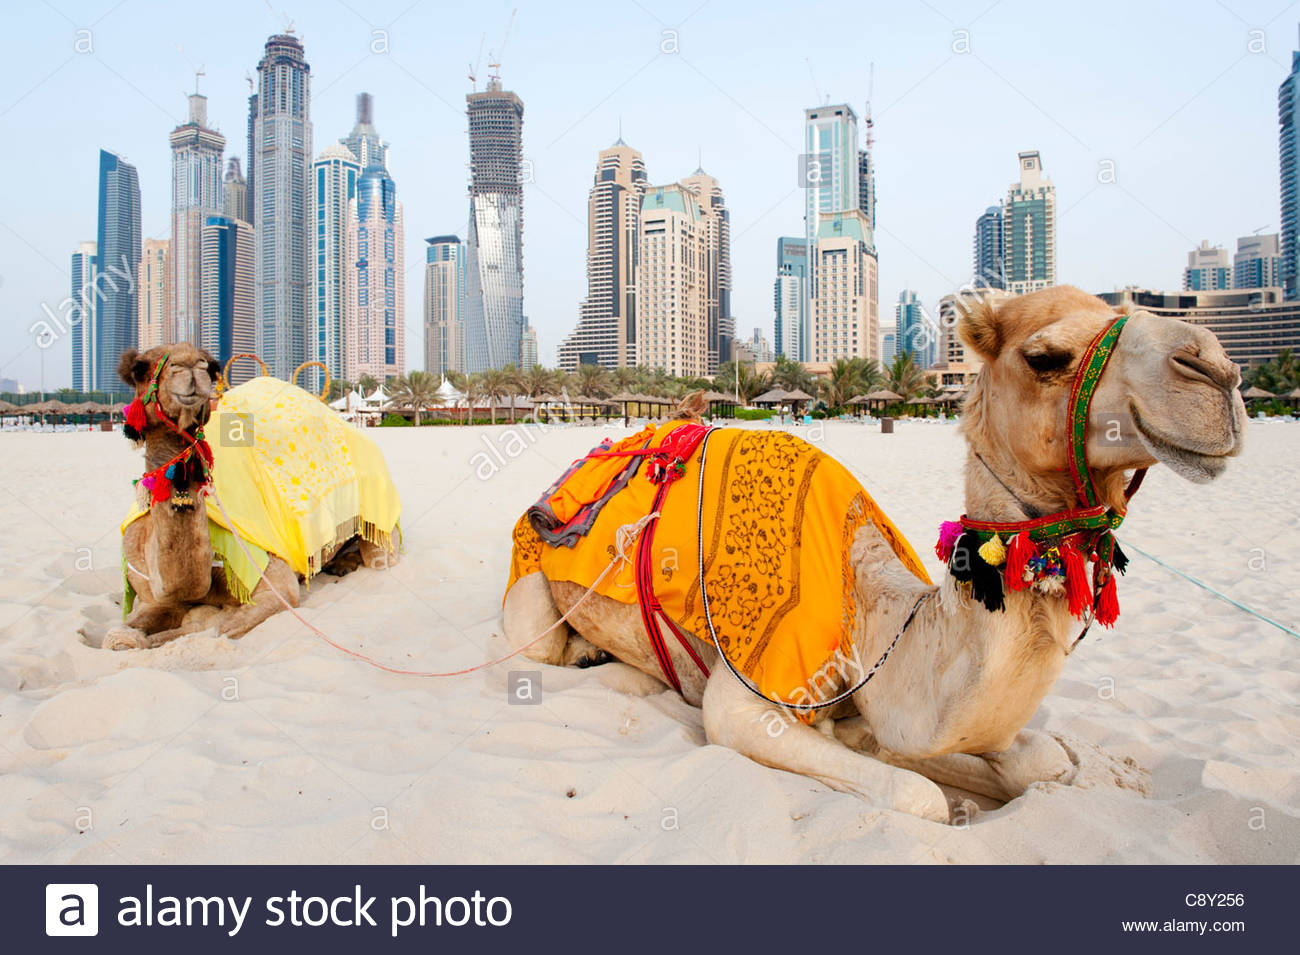 Camels on beach at jumeirah beach resort district with high rise camels on beach at jumeirah beach resort district with high rise buildings to rear in dubai united arab emiratesuae thecheapjerseys Image collections